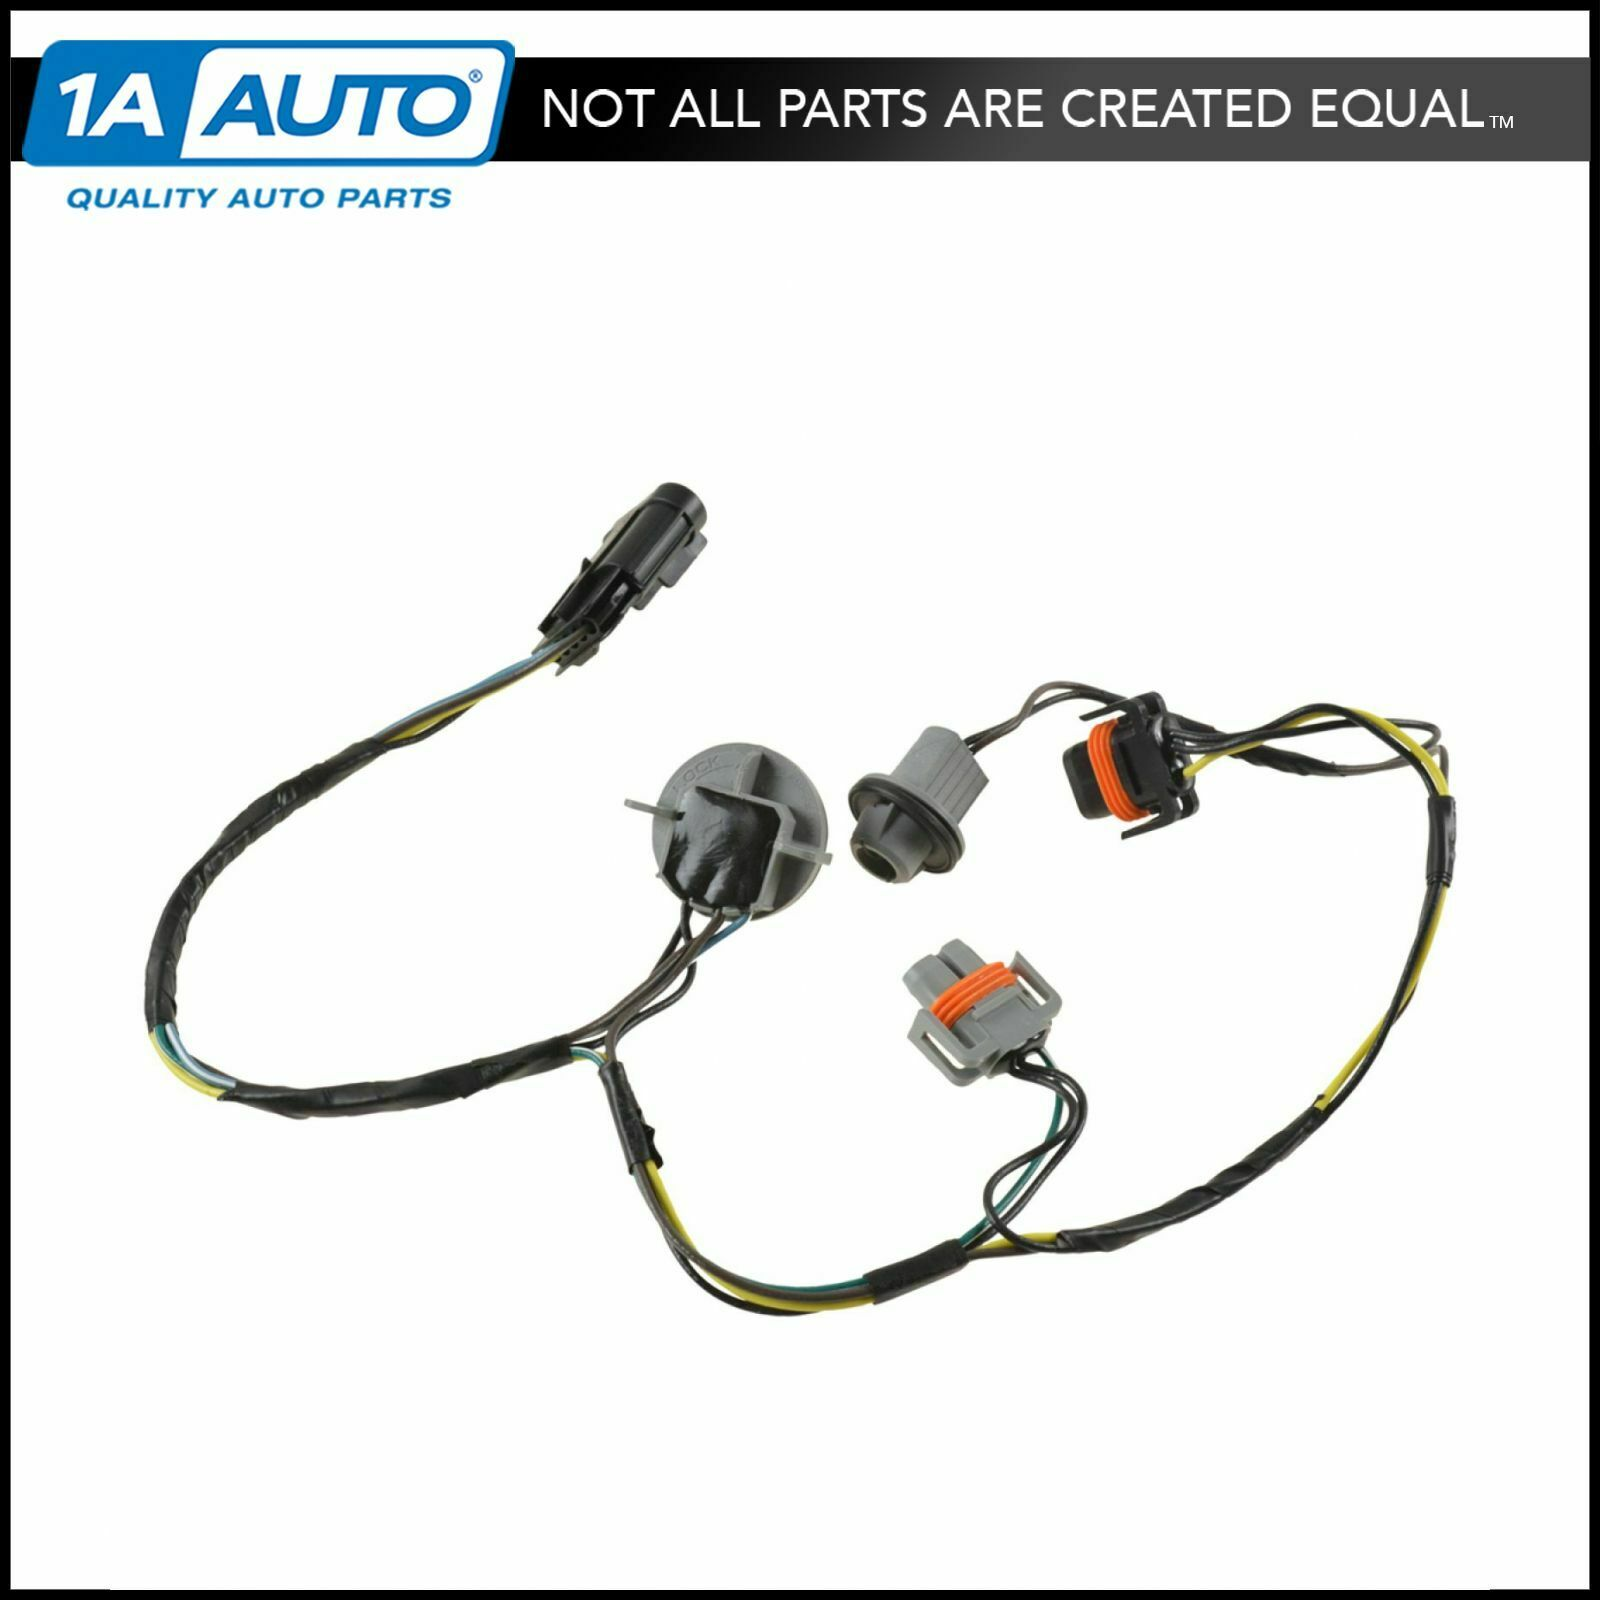 Oem 15930264 Headlight Wiring Harness Lh Or Rh Side For 08 12 Chevy Headlamp Pontiac 2007 1 Of 8only 3 Available